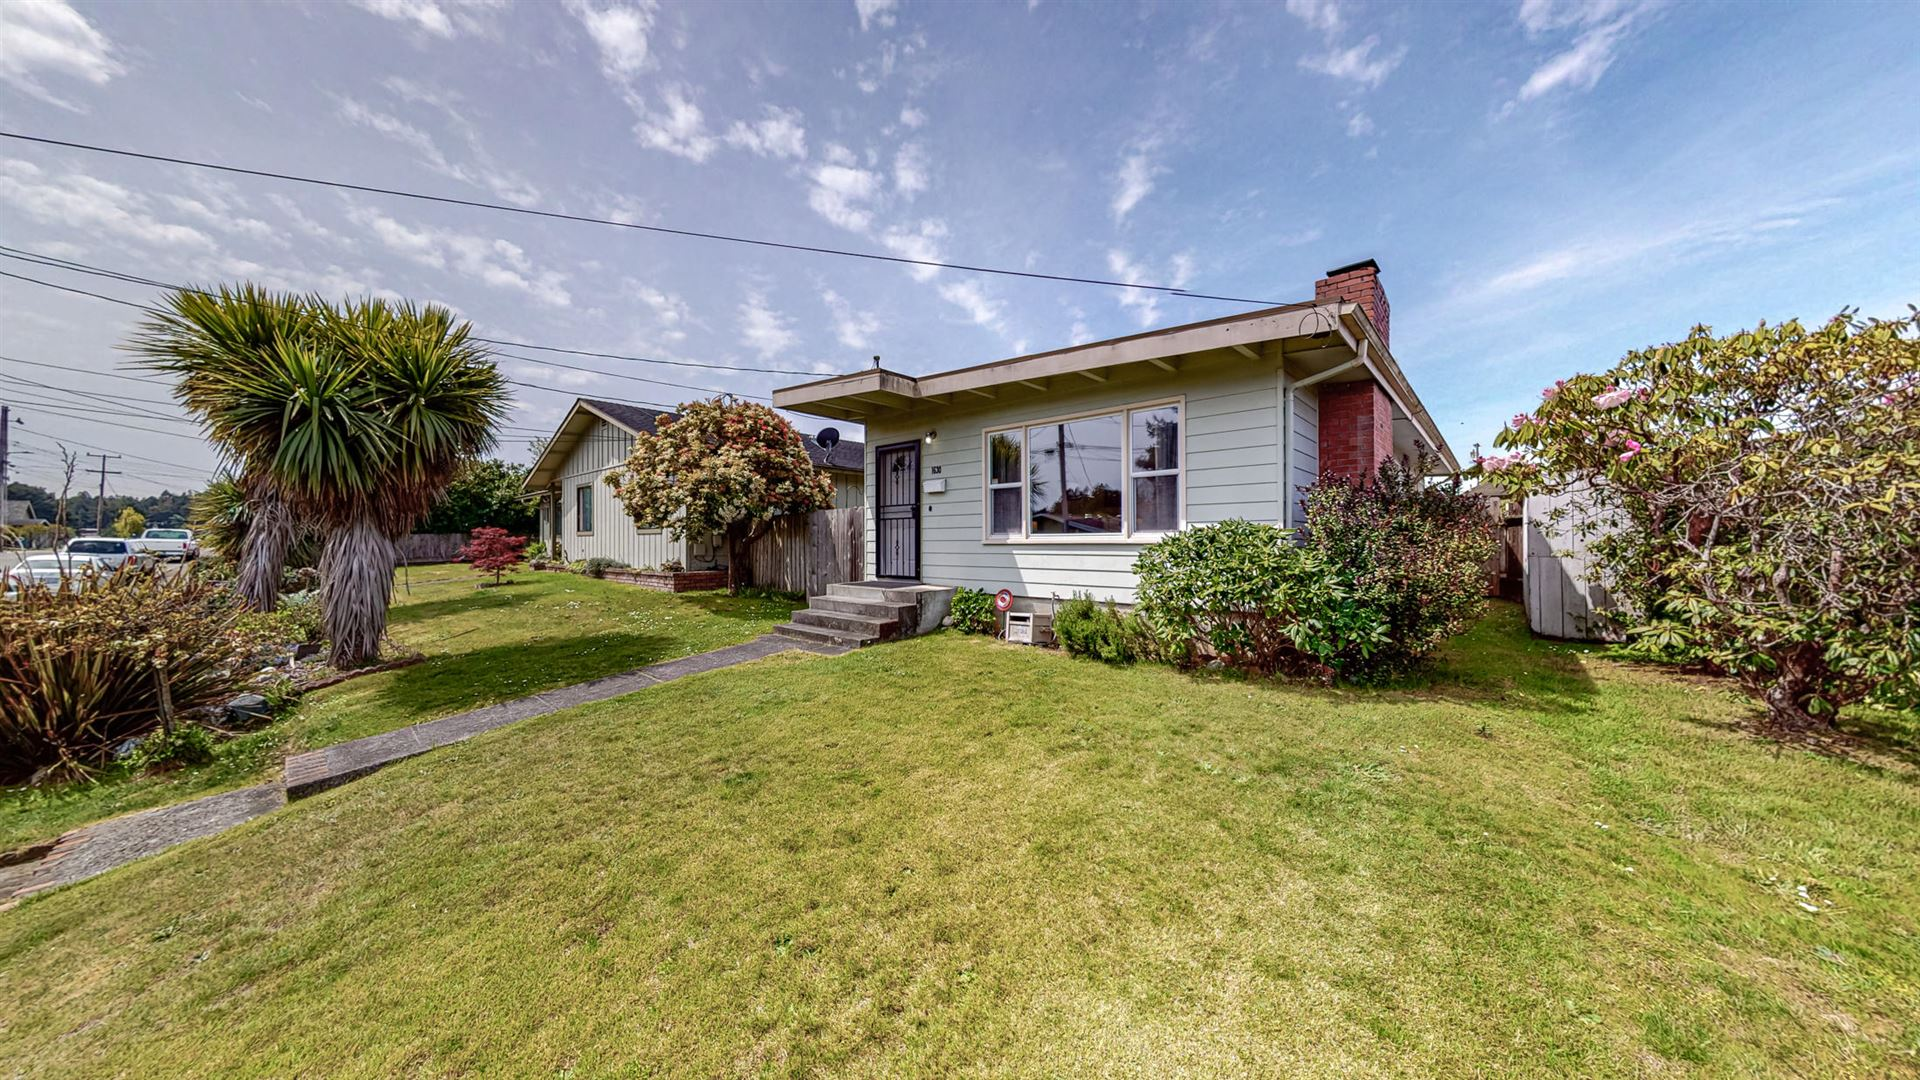 1630 East Avenue, Eureka, CA 95501 - MLS#: 258970